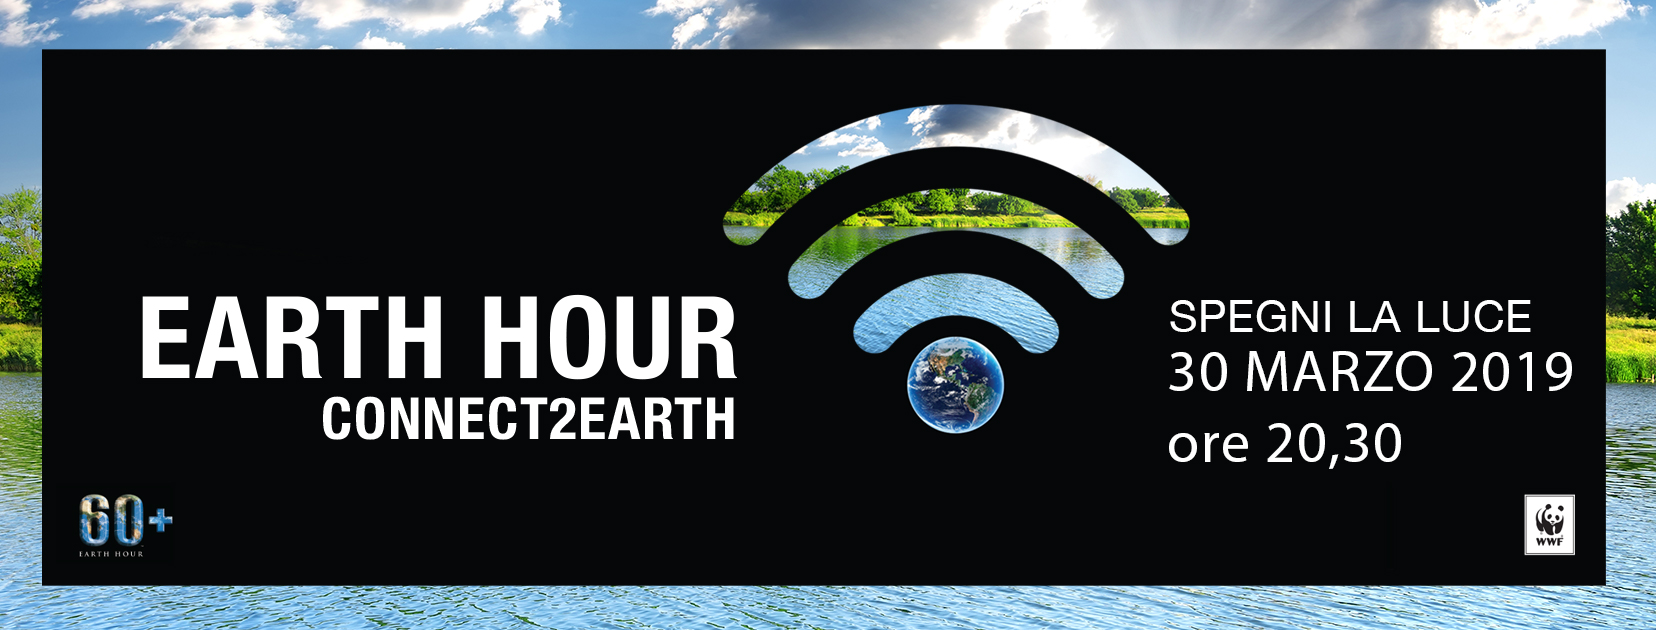 earth-hour-2019